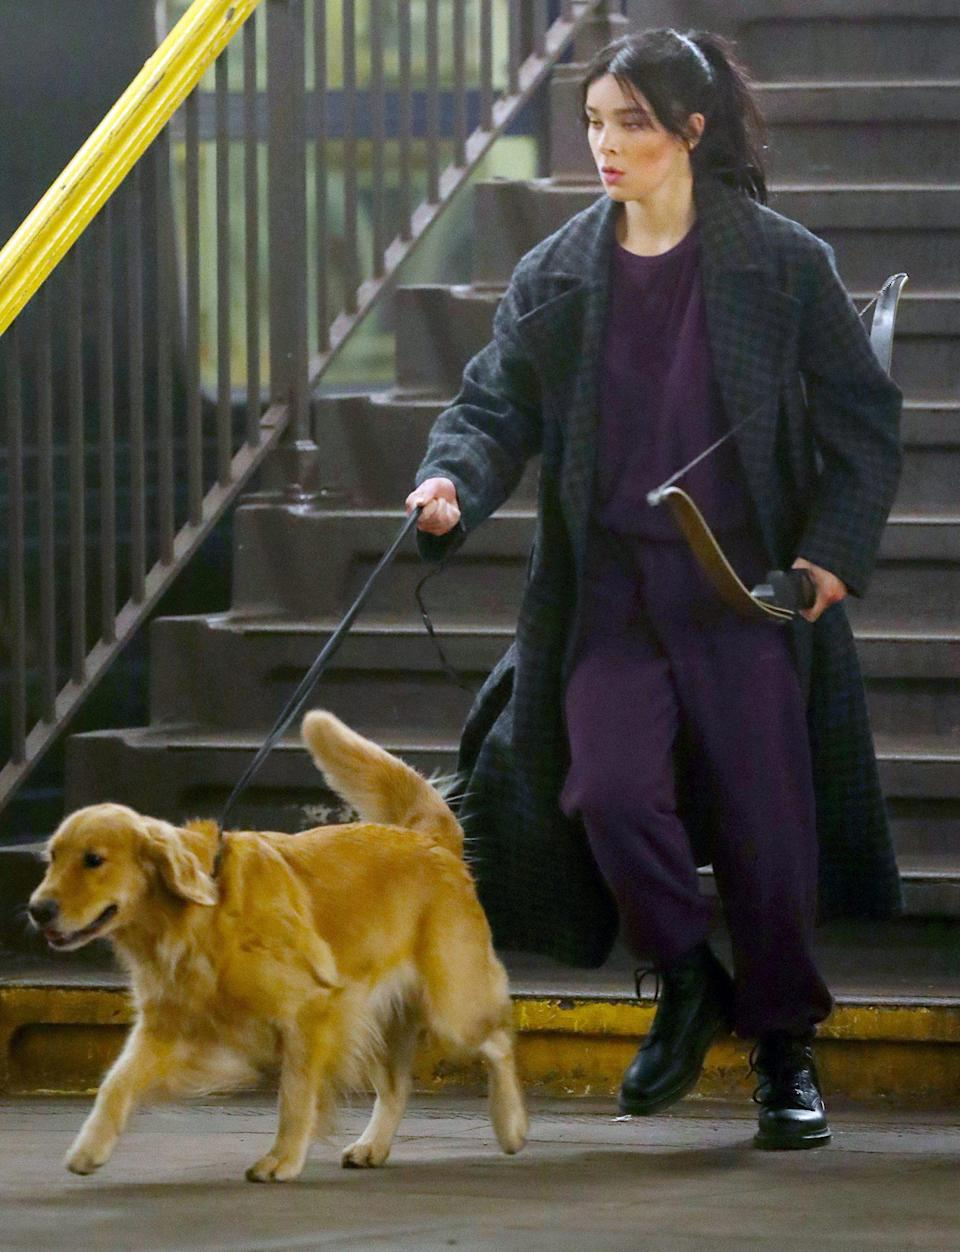 <p>Hailee Steinfled is seen in full character as Kate Bishop on the set of Disney+'s new series <em>Hawkeye </em>on Wednesday in N.Y.C.</p>